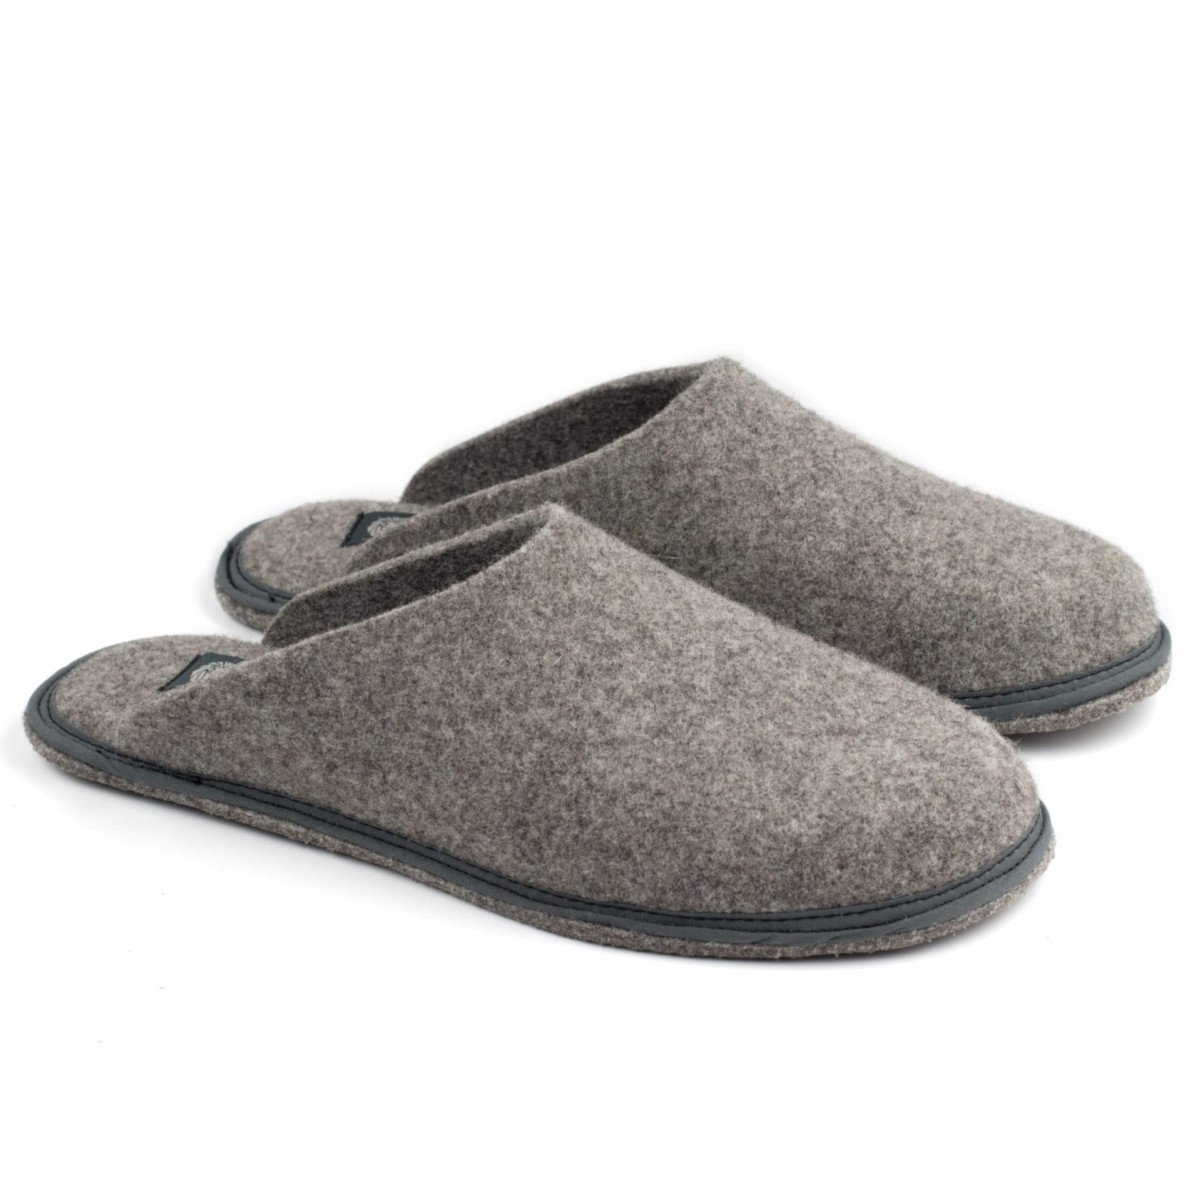 Slipper Holi Sand in felted undyed wool